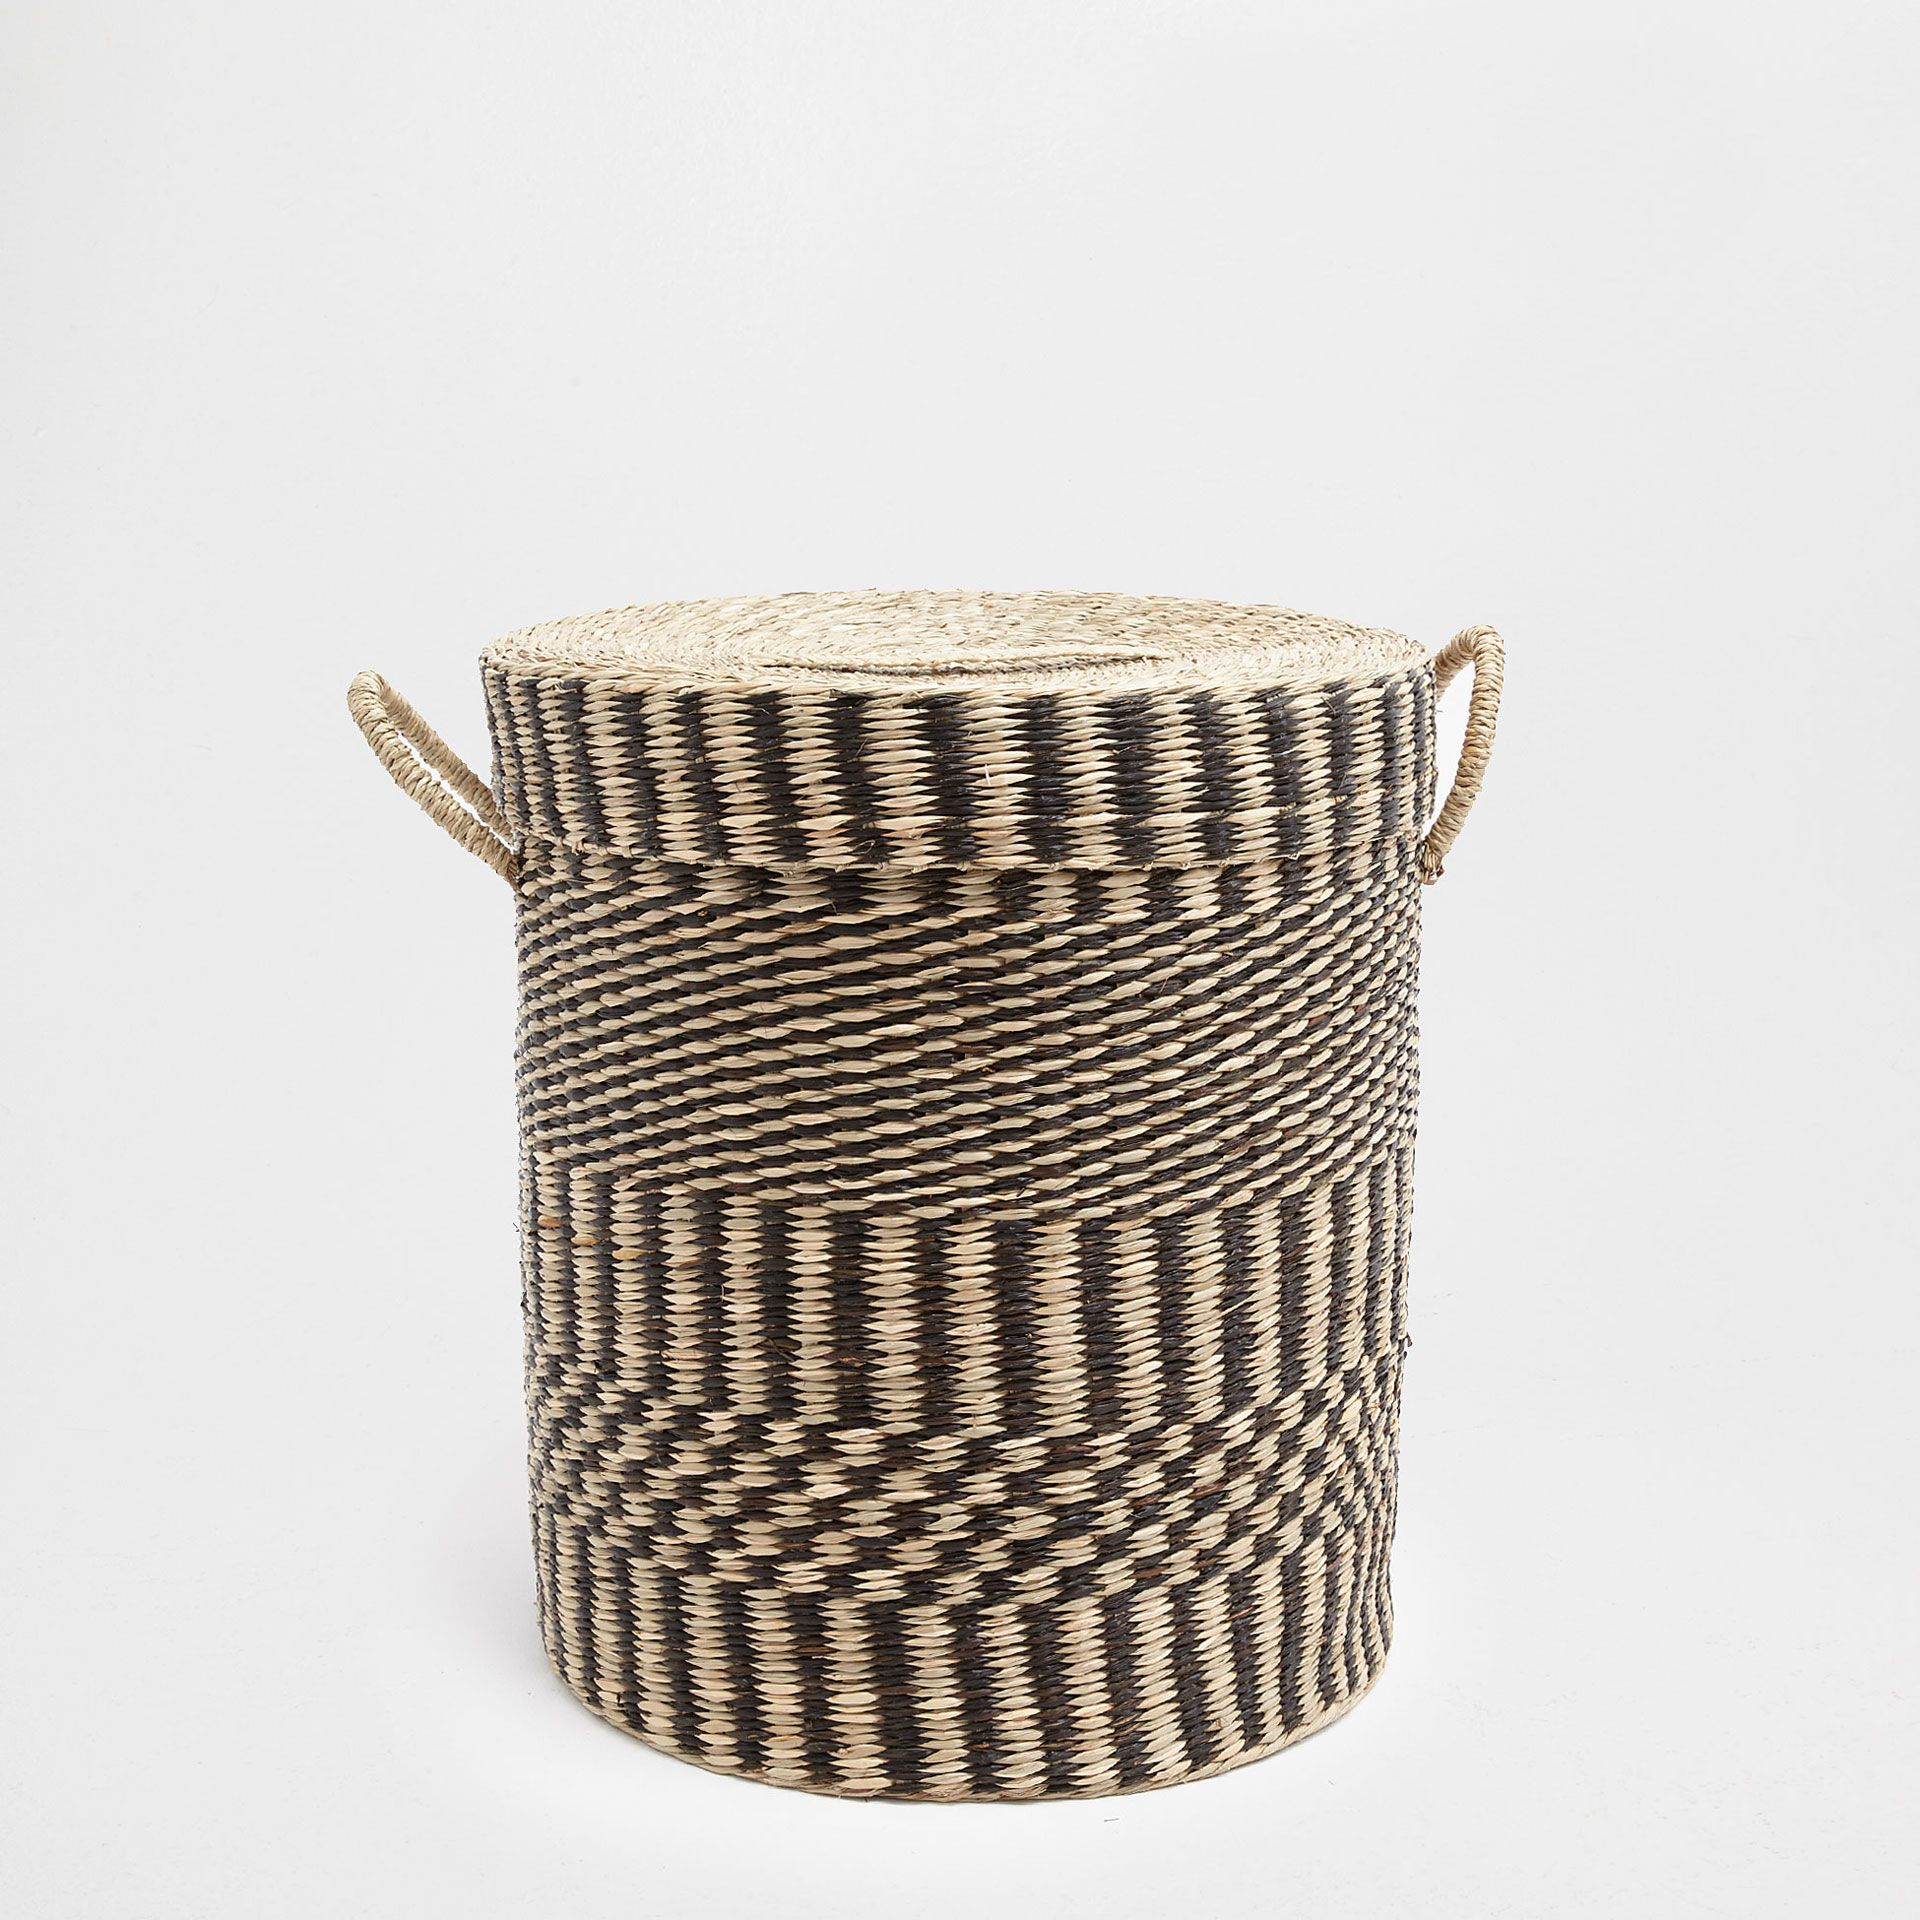 Two Tone Clothes Basket With Lid Baskets Bathroom Zara Home Greece Clothes Basket Laundry Basket With Lid